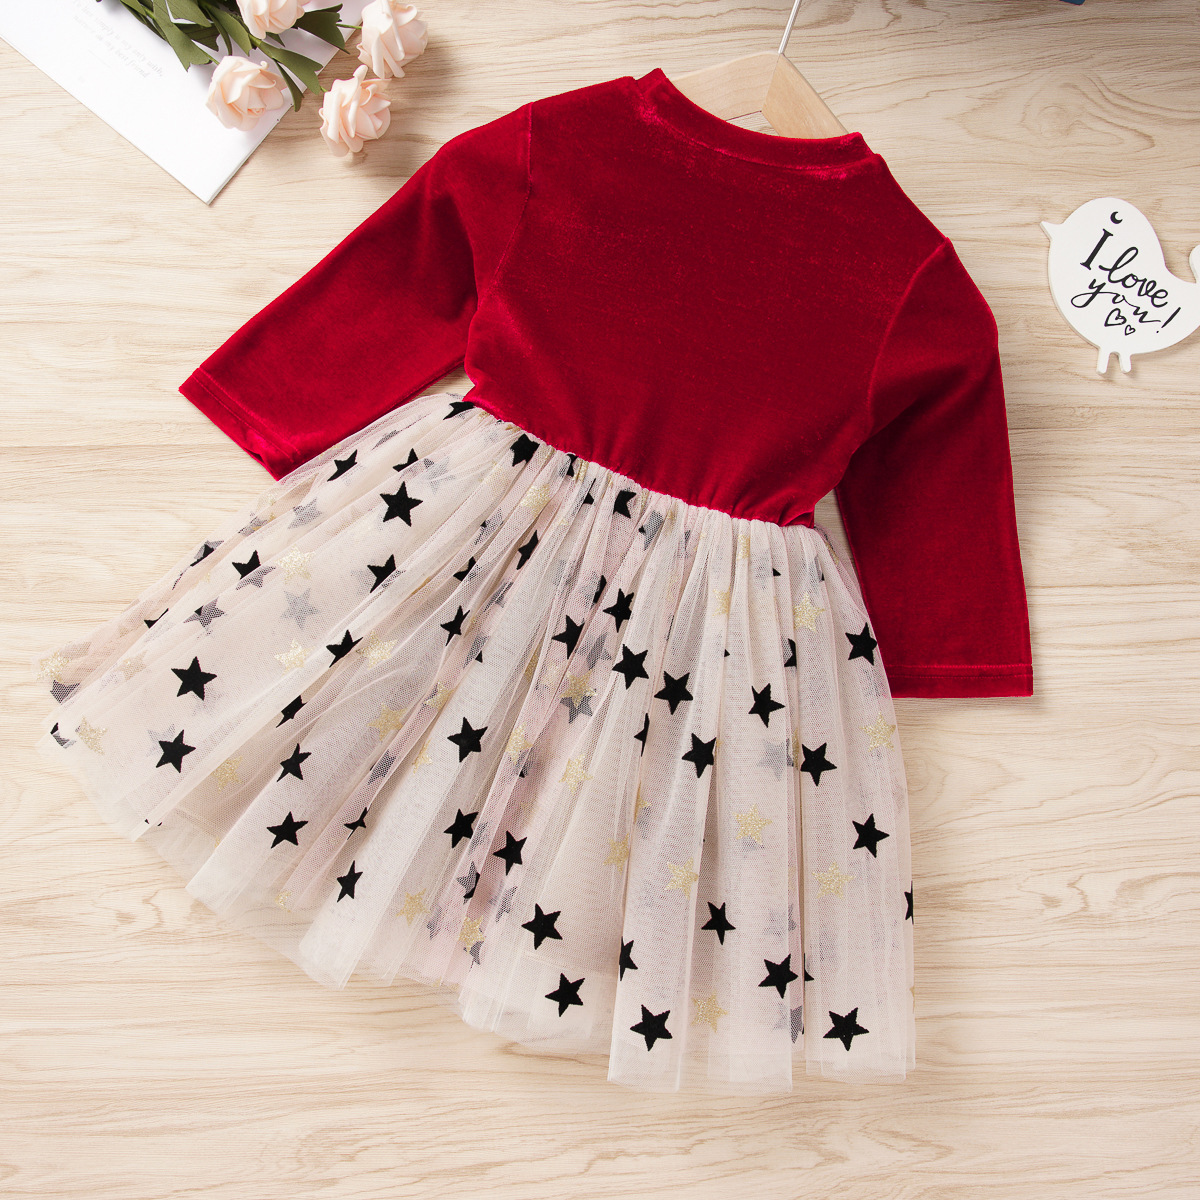 HIPAC Toddler Girl Winter Clothes Kids Dress for Baby Girls Princess Dresses Party Draped Ball Gown Children Cute Star Clothing